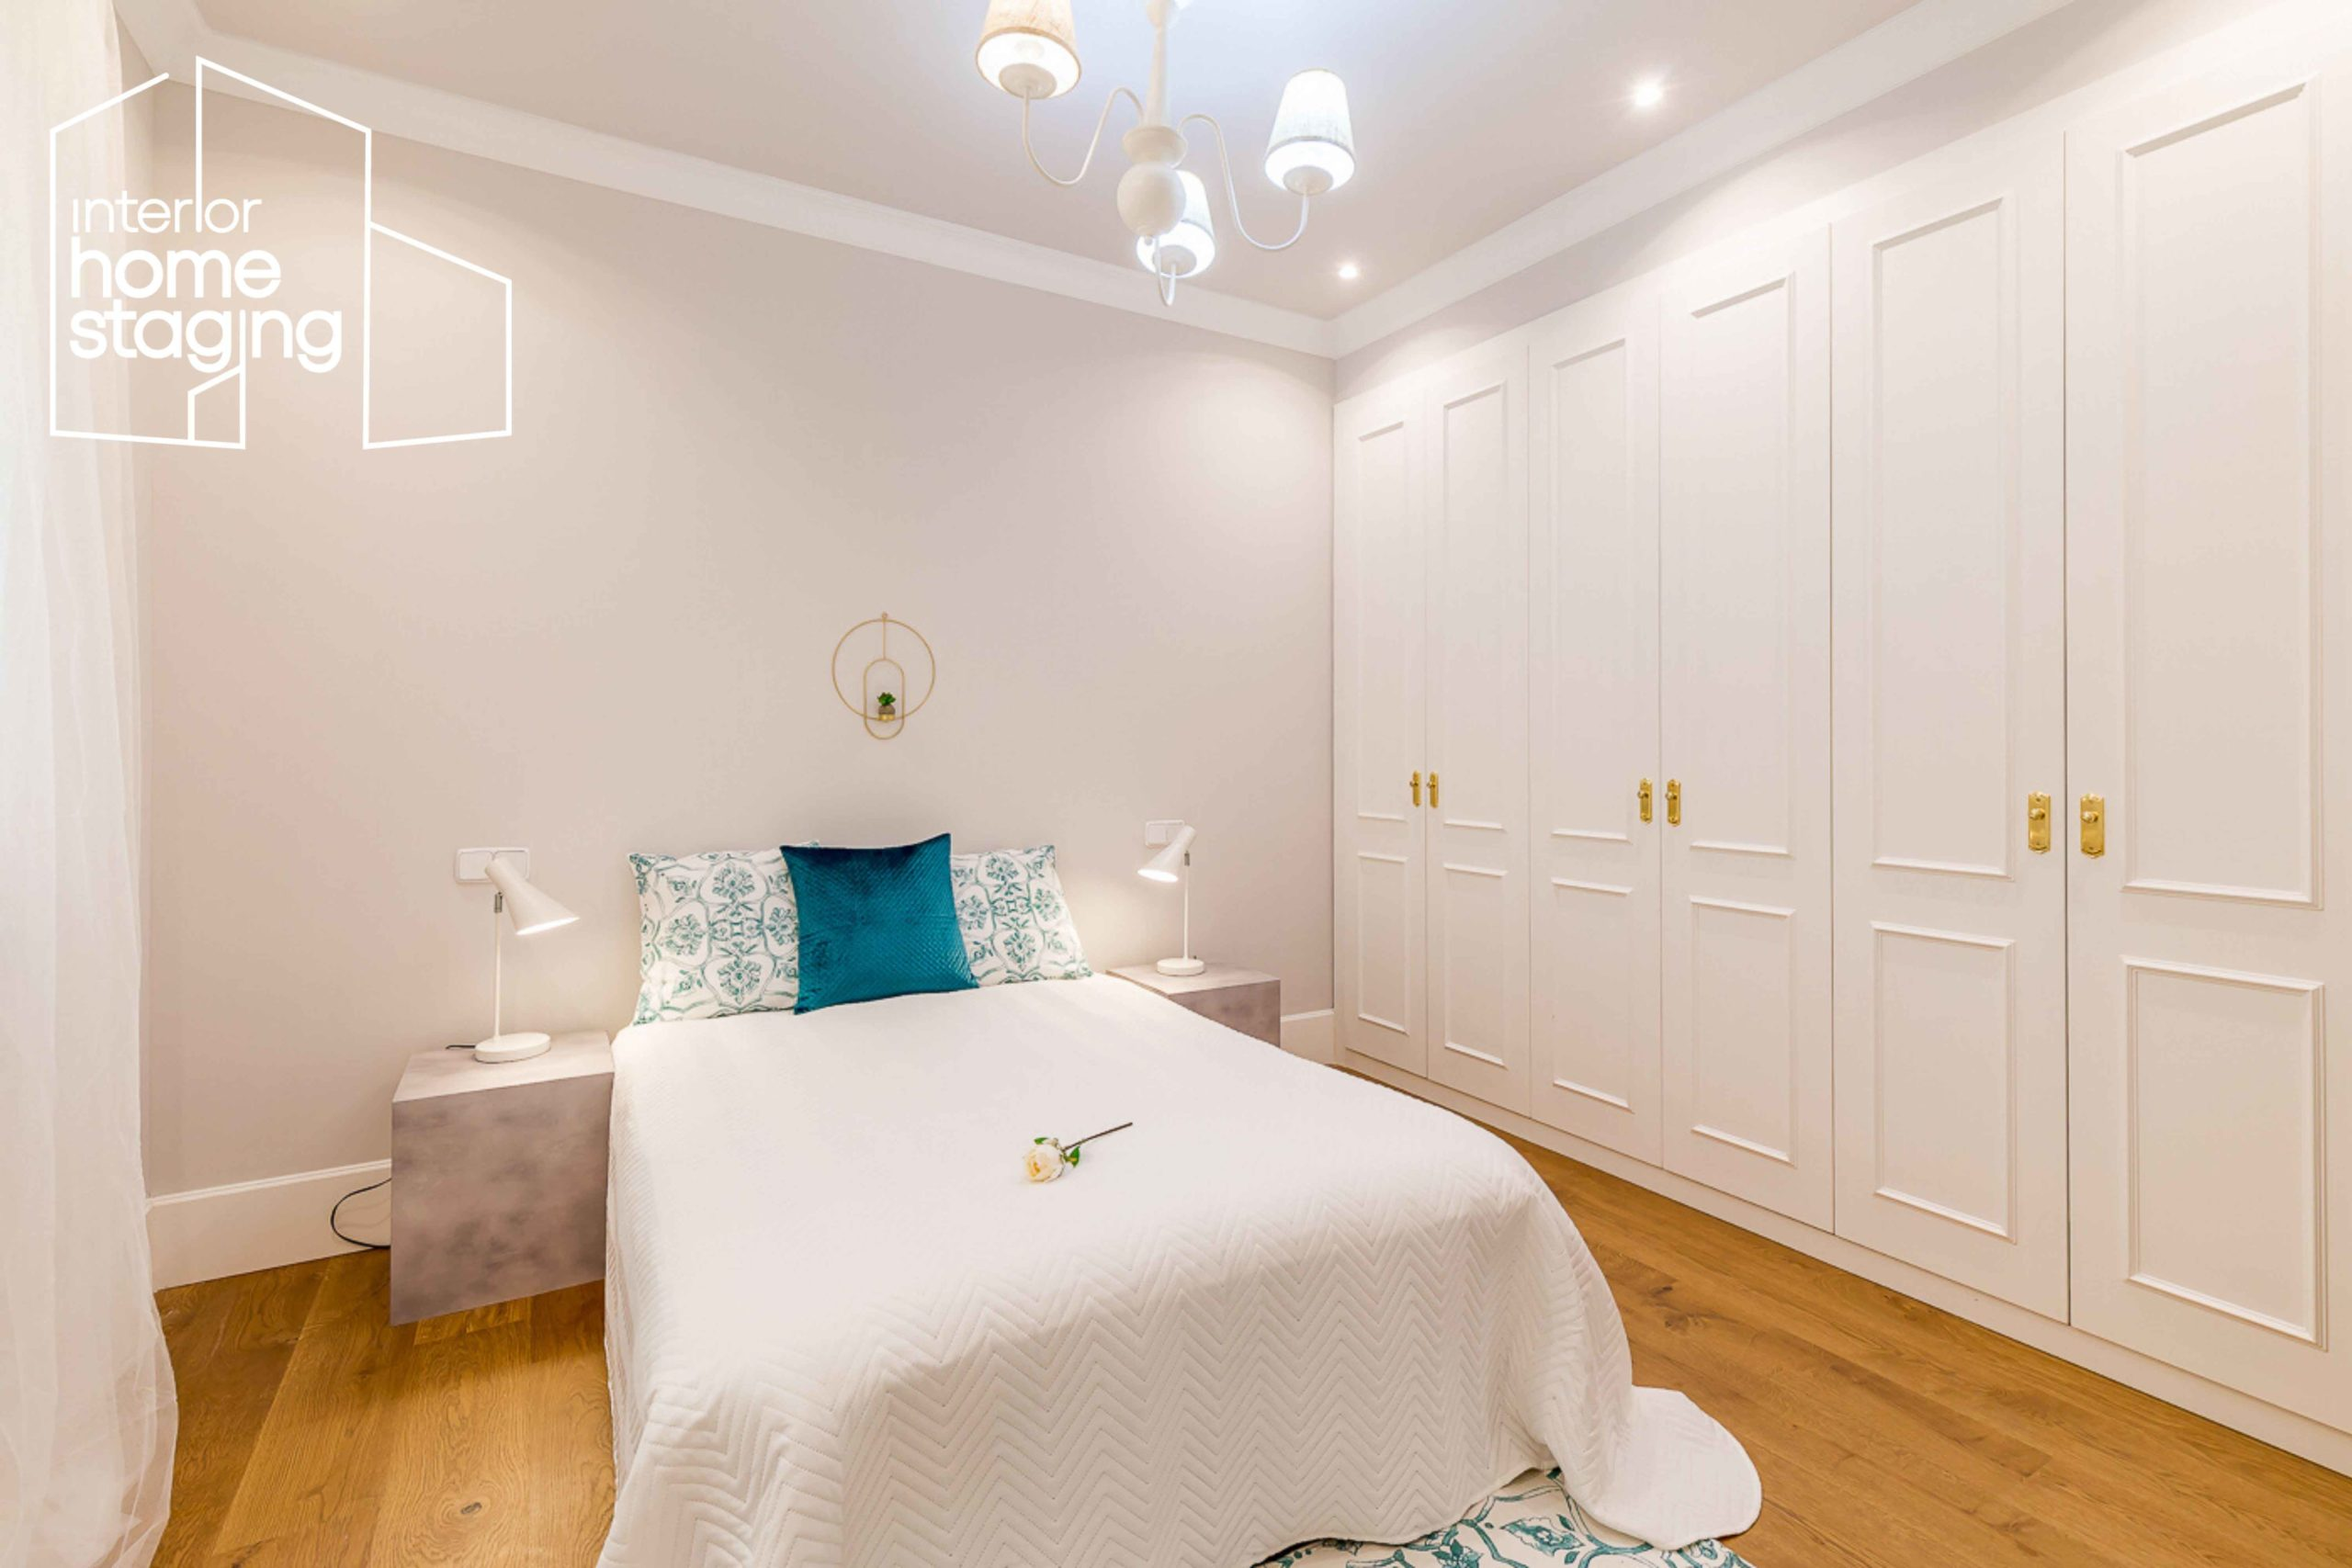 Home Staging dormitorio casa en venta Barrio Salamanca Madrid